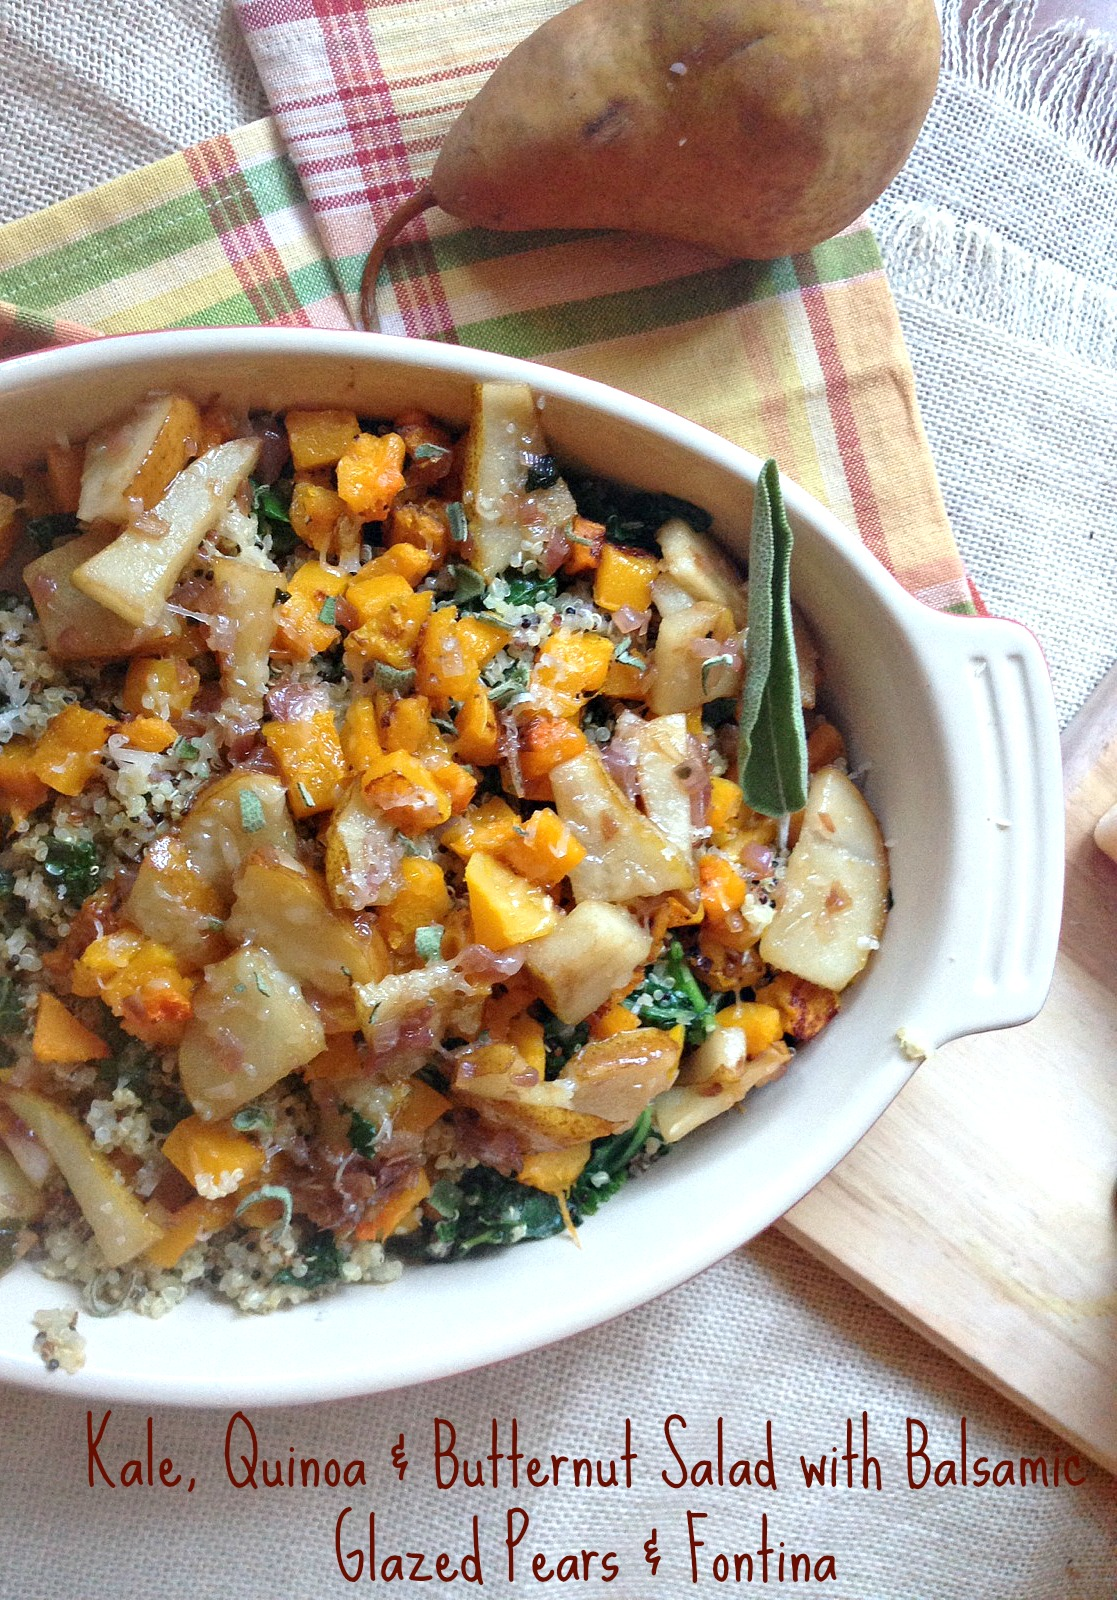 Kale, Quinoa & Butternut Salad with Balsamic-Glazed Pears & Fontina